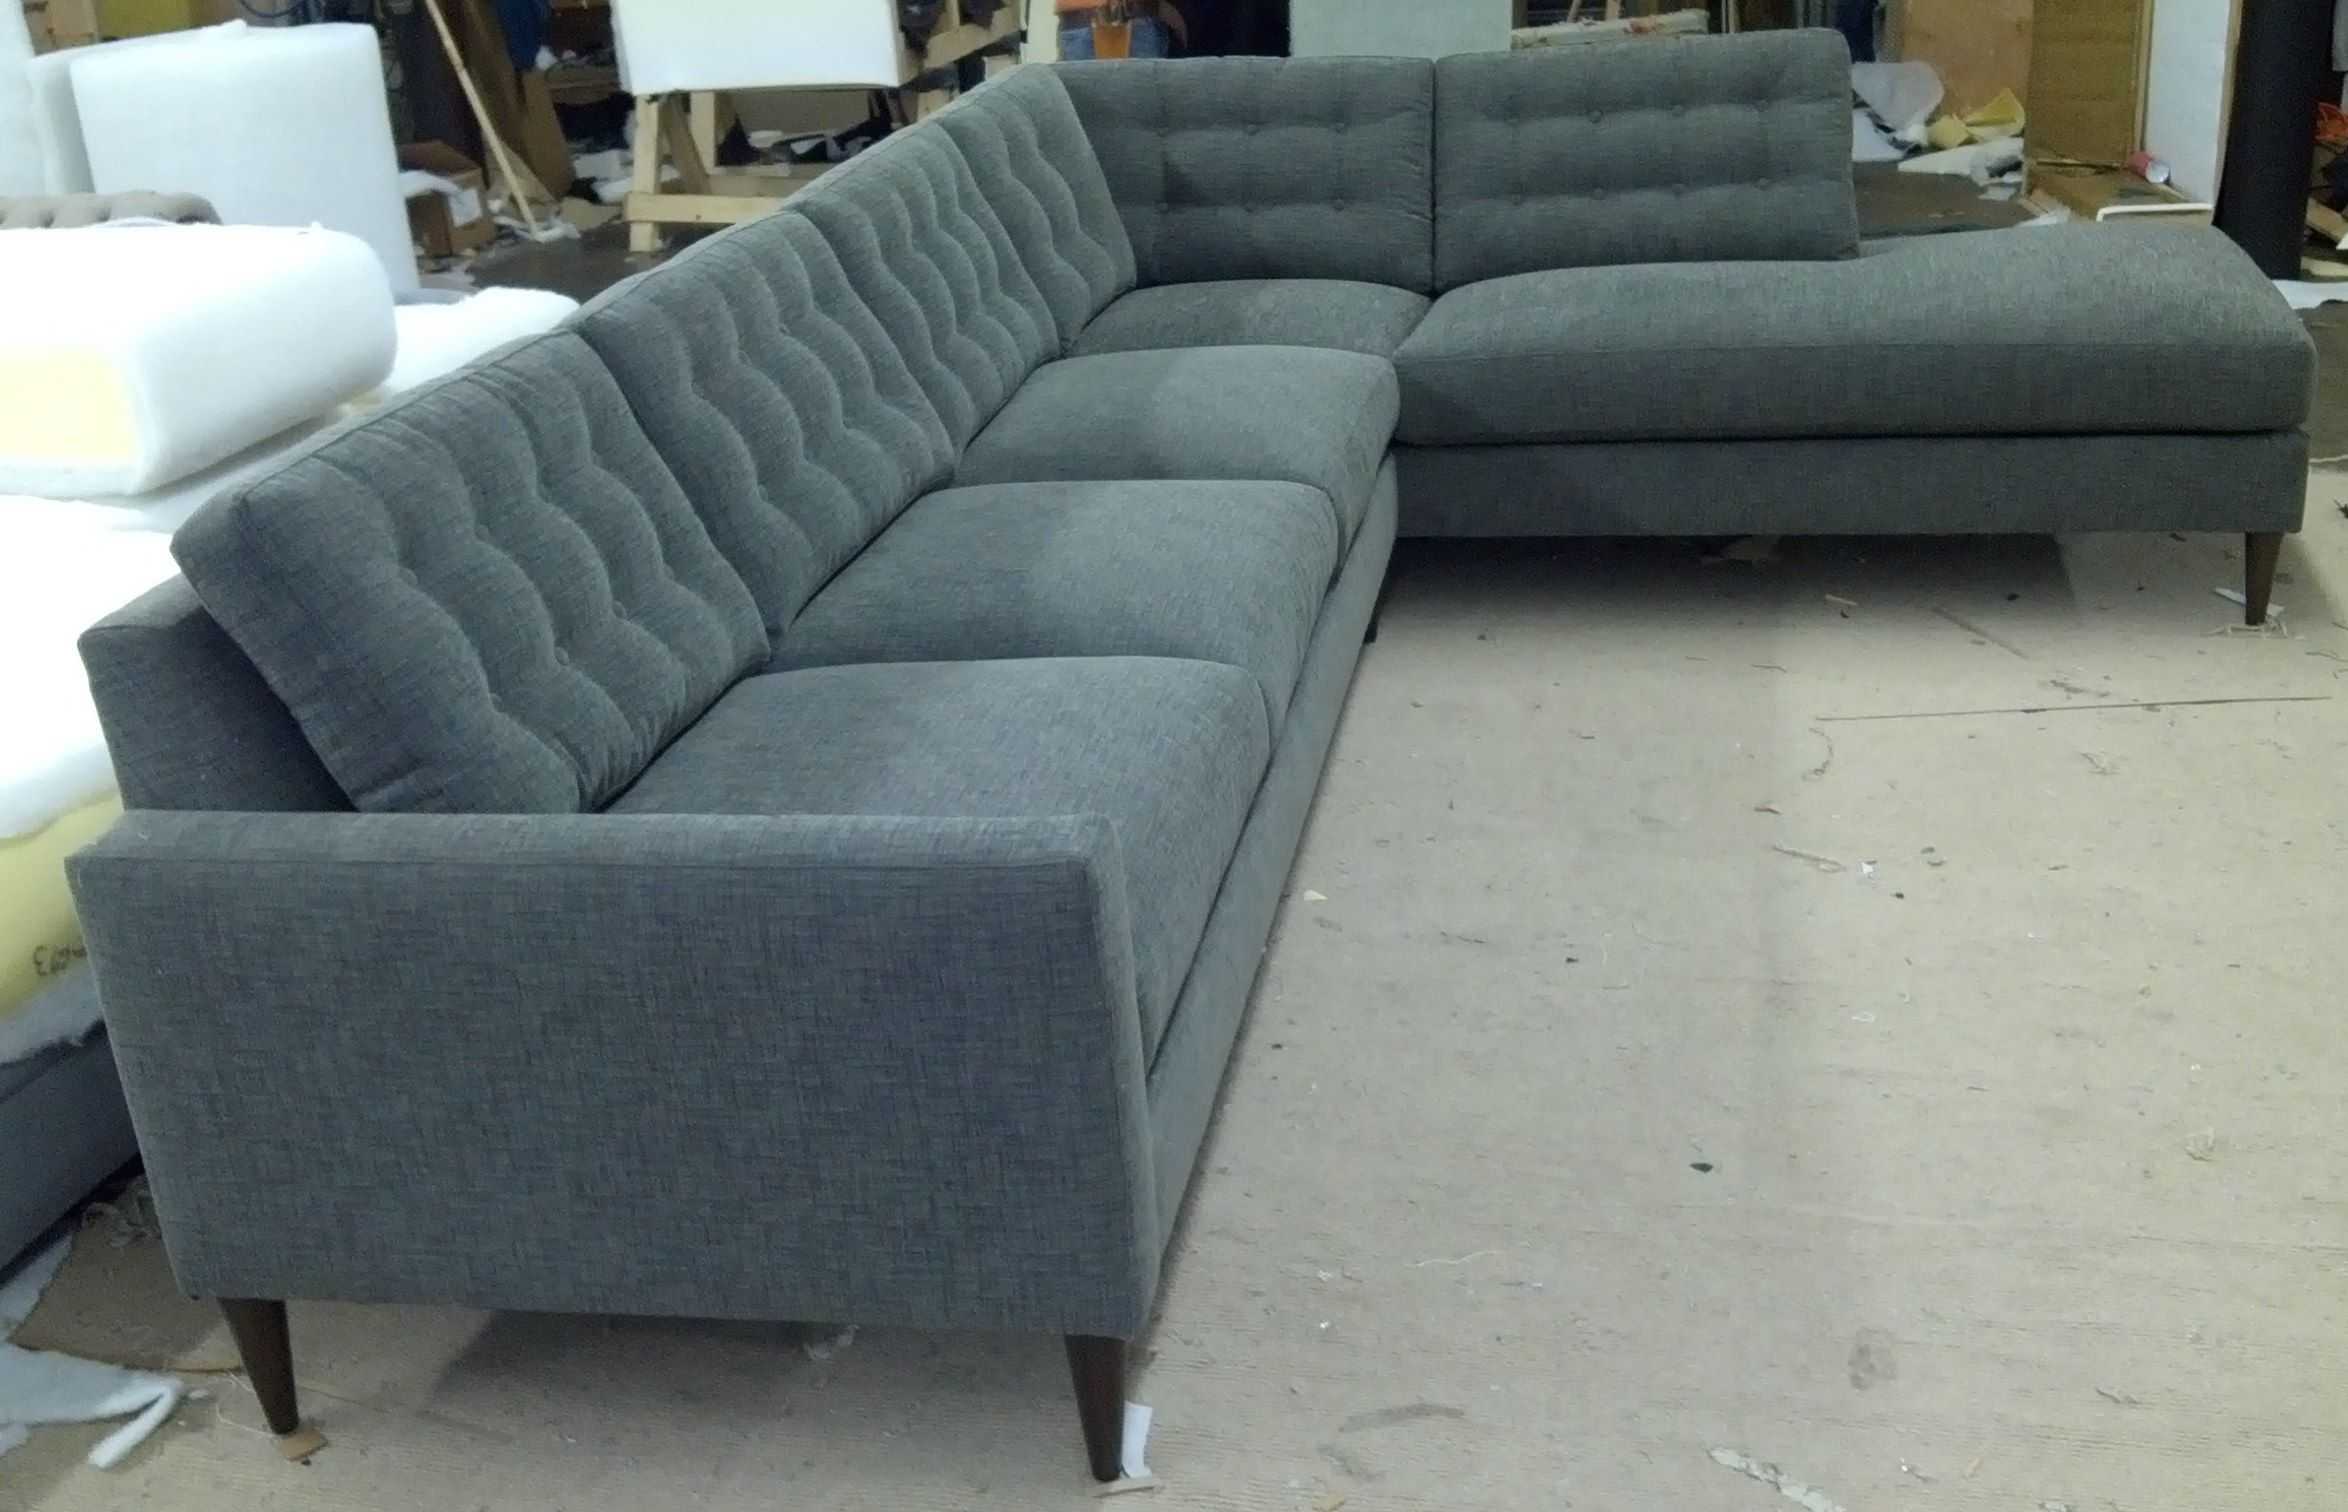 Hana Sofa Bumper Chaise Sectional Every Style Can Be Customized In Virtually Any Way Possible Www Custom Sectional Sofa Modern Sofa Sectional Sofa Design